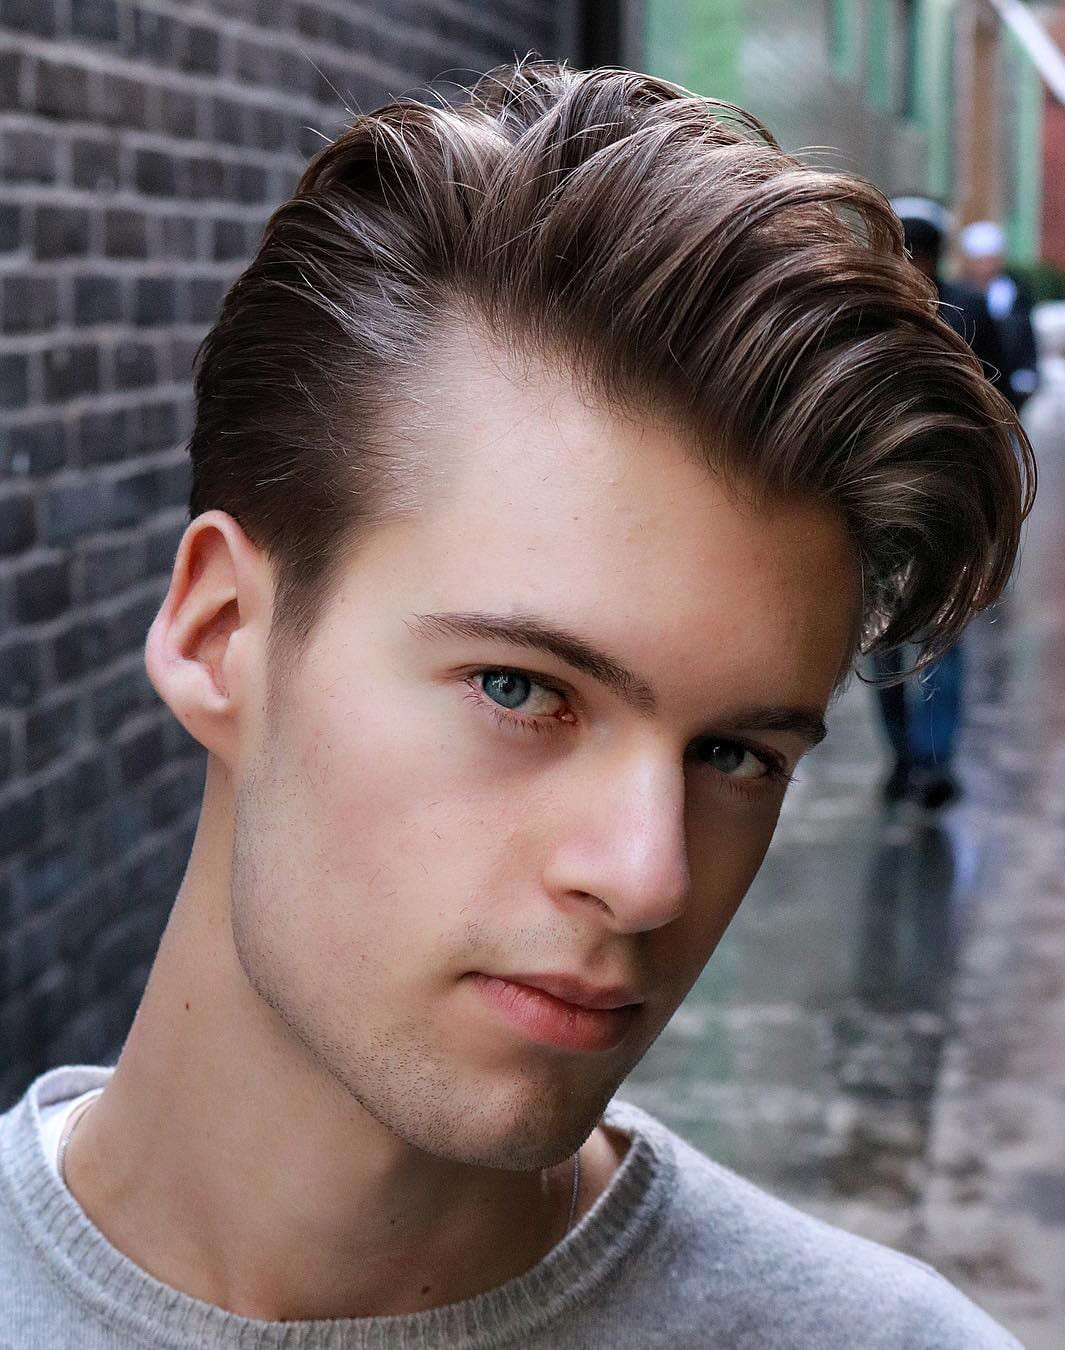 Side Swept with Classic Scissors Crop